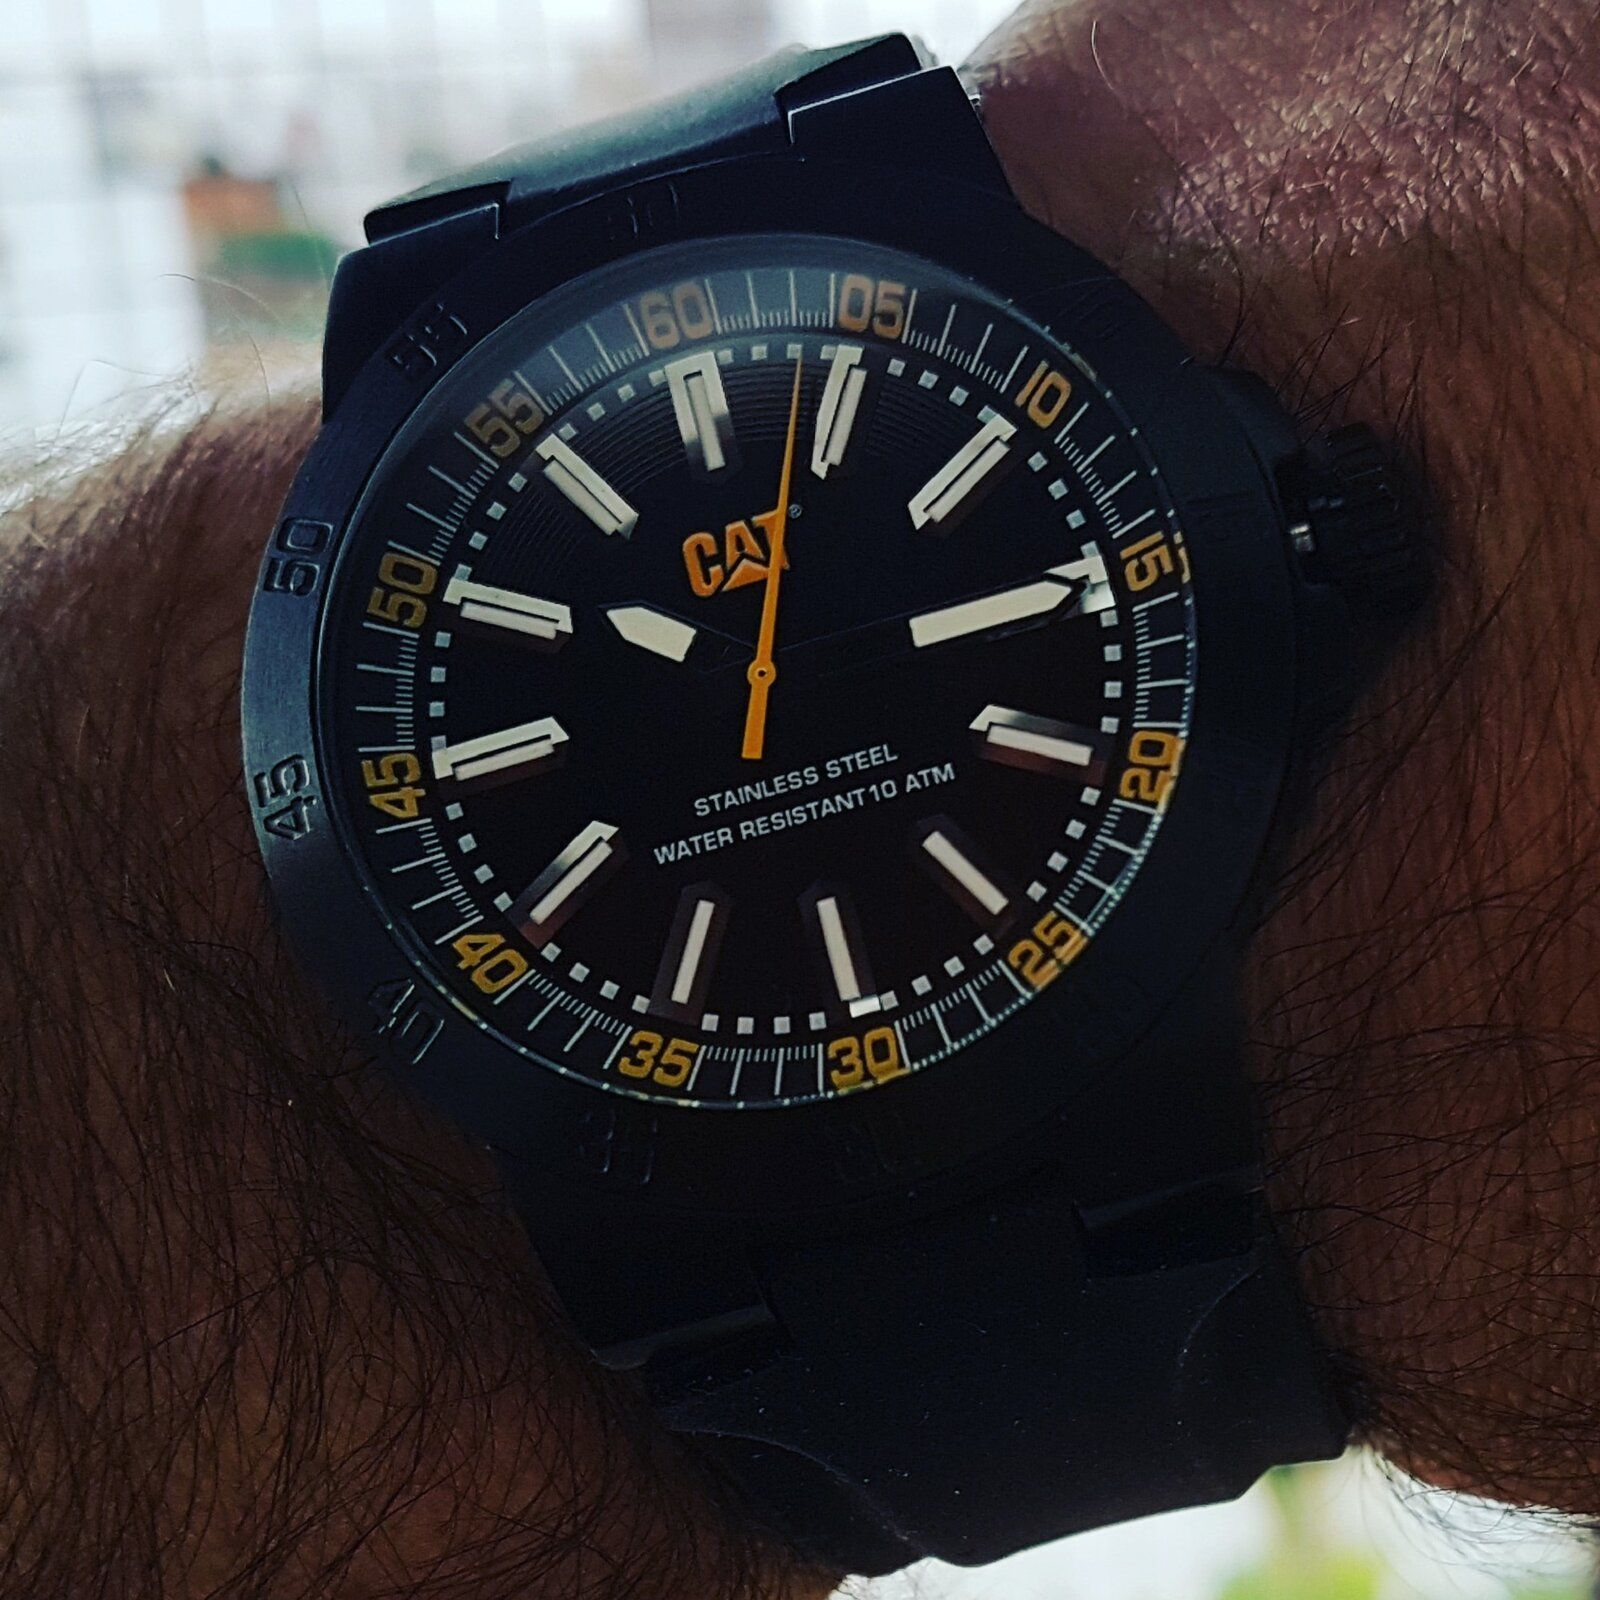 CAT Cosmofit 2012 Mens Rubber Date Watch YP.161.21.124 (2012).jpg